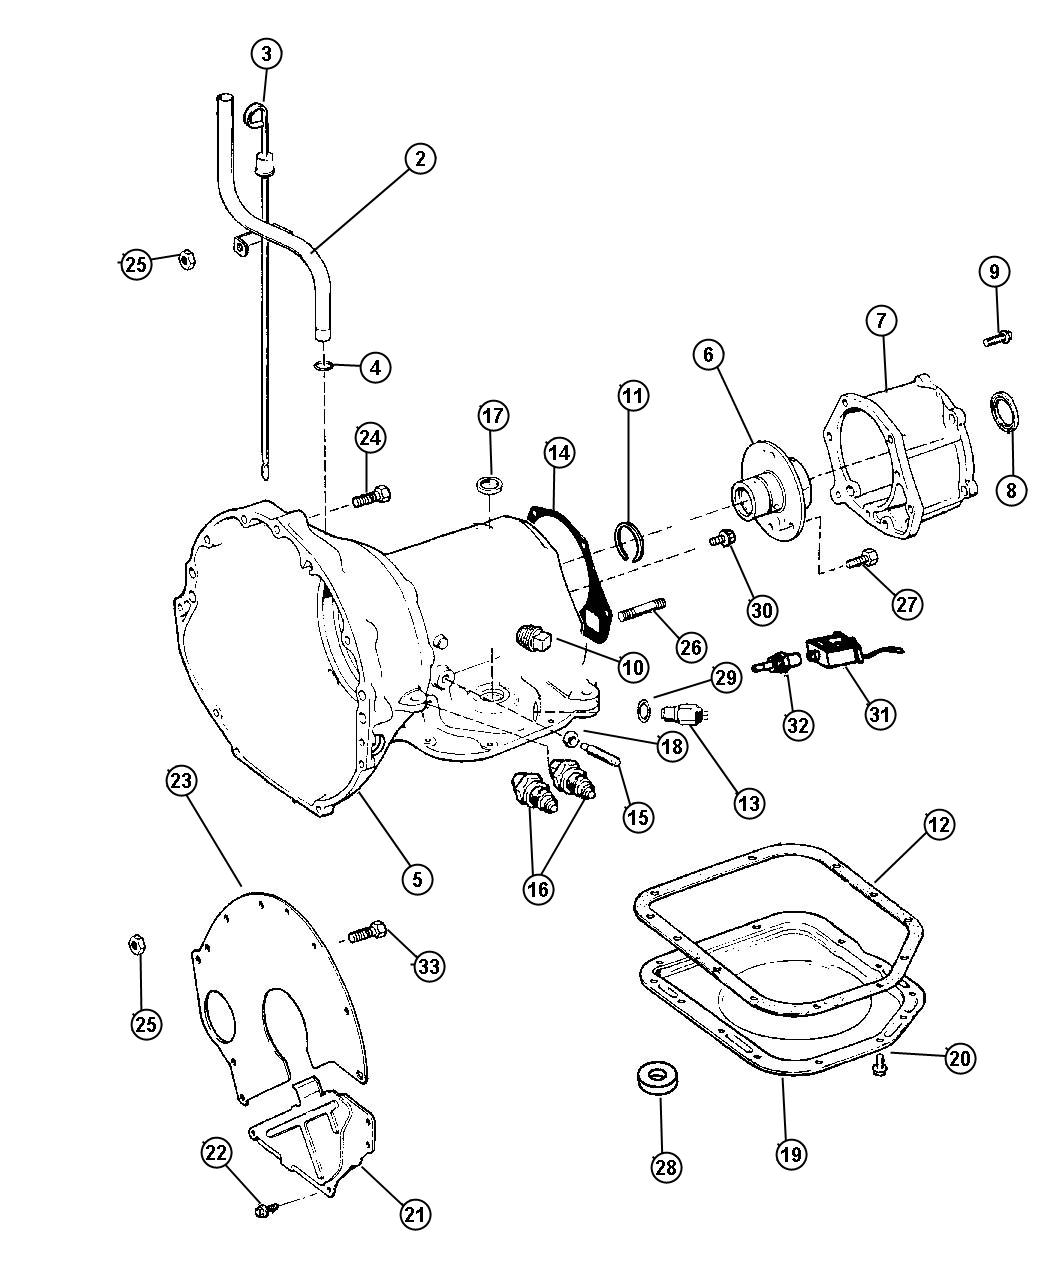 1999 Jeep Wrangler Connector  Wiring  Engine  Related